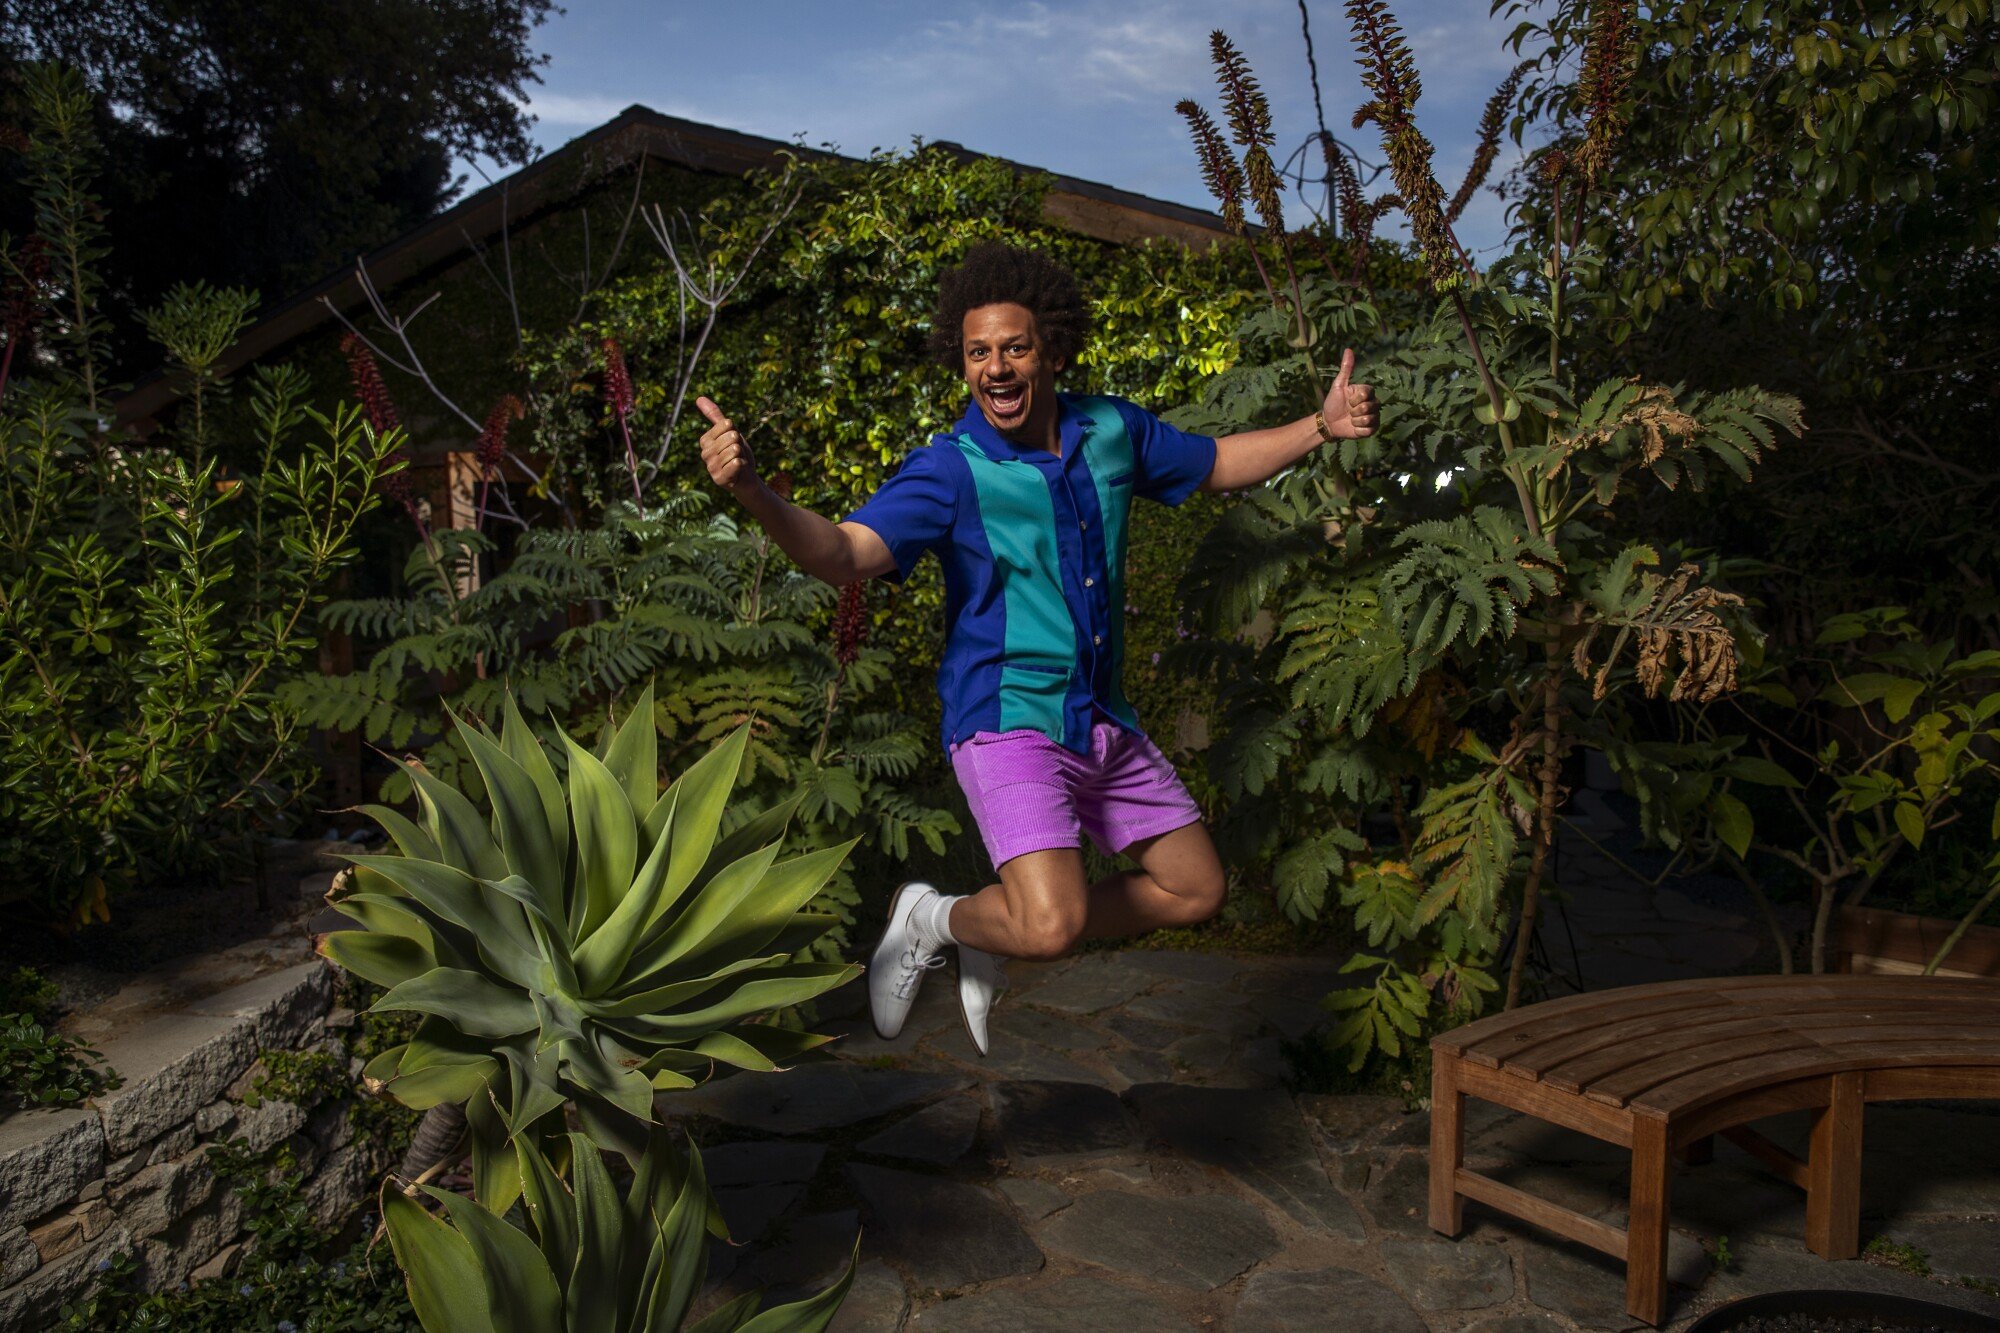 Eric Andre gives double thumbs-up as he jumps in the air